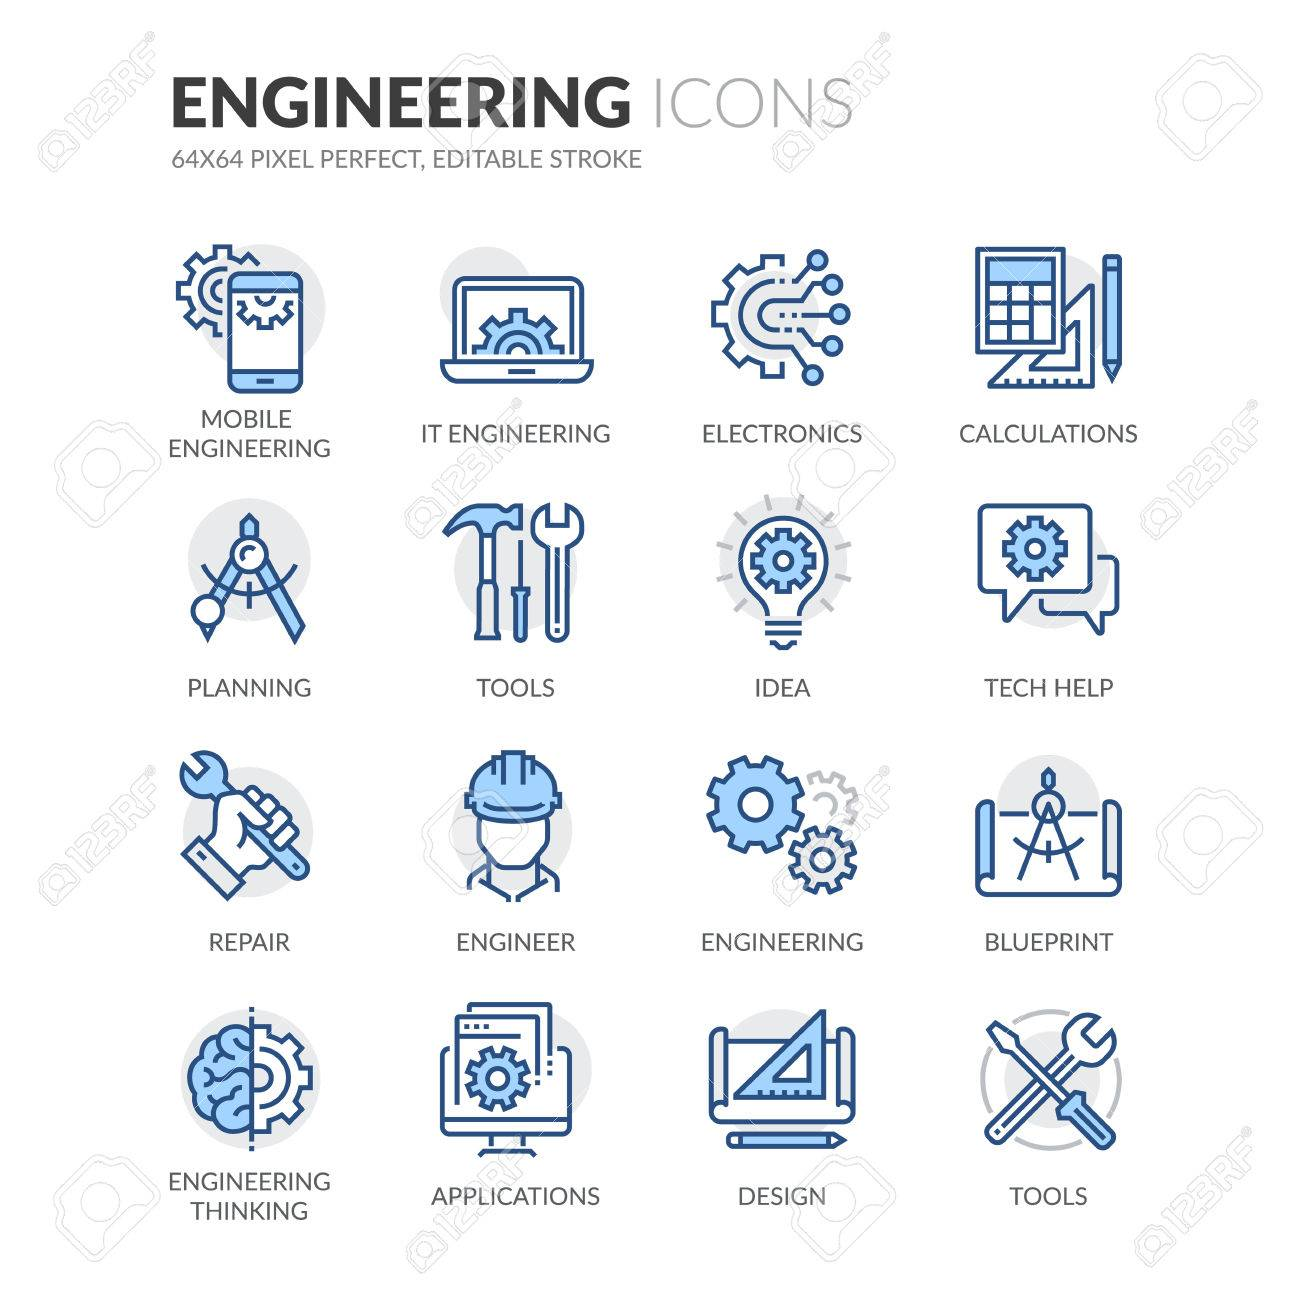 Simple Set of Engineering Related Color Vector Line Icons. Contains such Icons as Calculations, Blueprint, Engineer, App Design and more. Editable Stroke. 64x64 Pixel Perfect. - 61777313